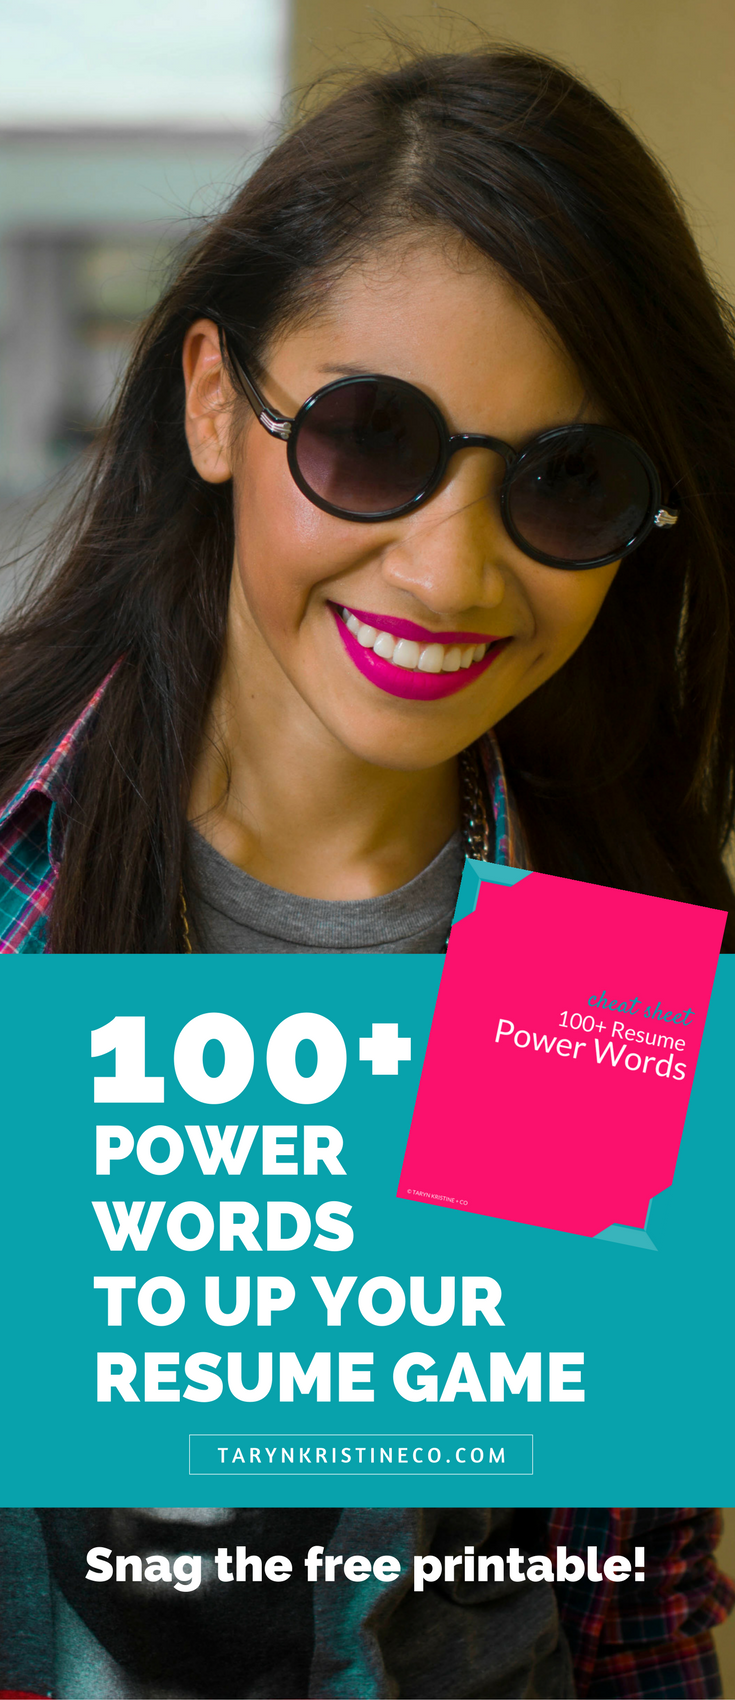 Over 100 power words to improve your resume. Resumes | Resume Tips ...